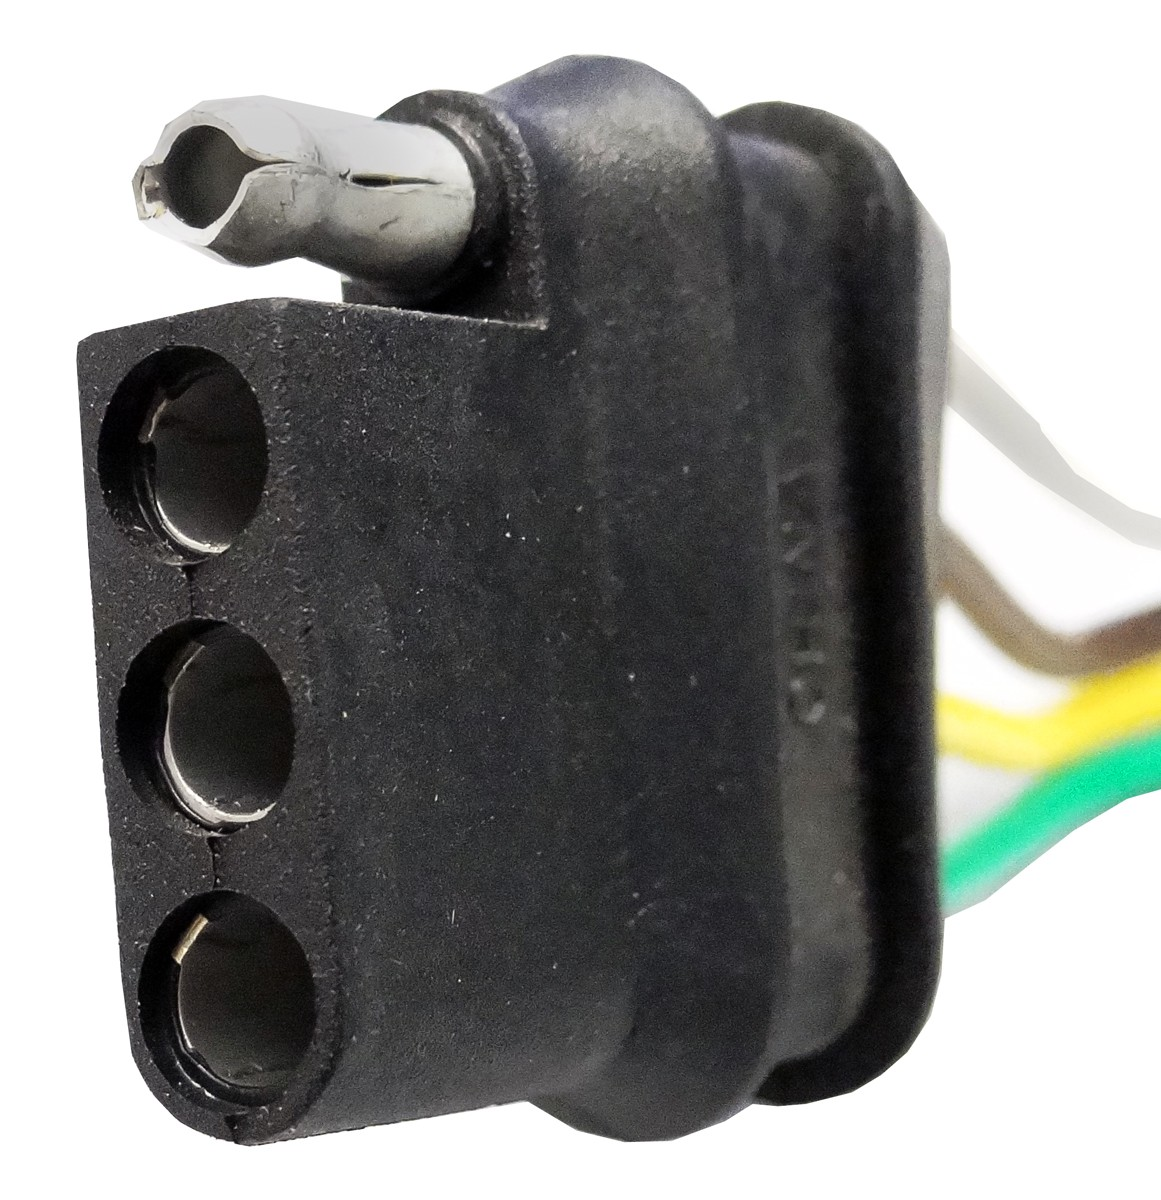 48 U0026quot  Wire Harness - 4-way Flat Connector - Car End - Wire - Wiring  Adapters  Connectors